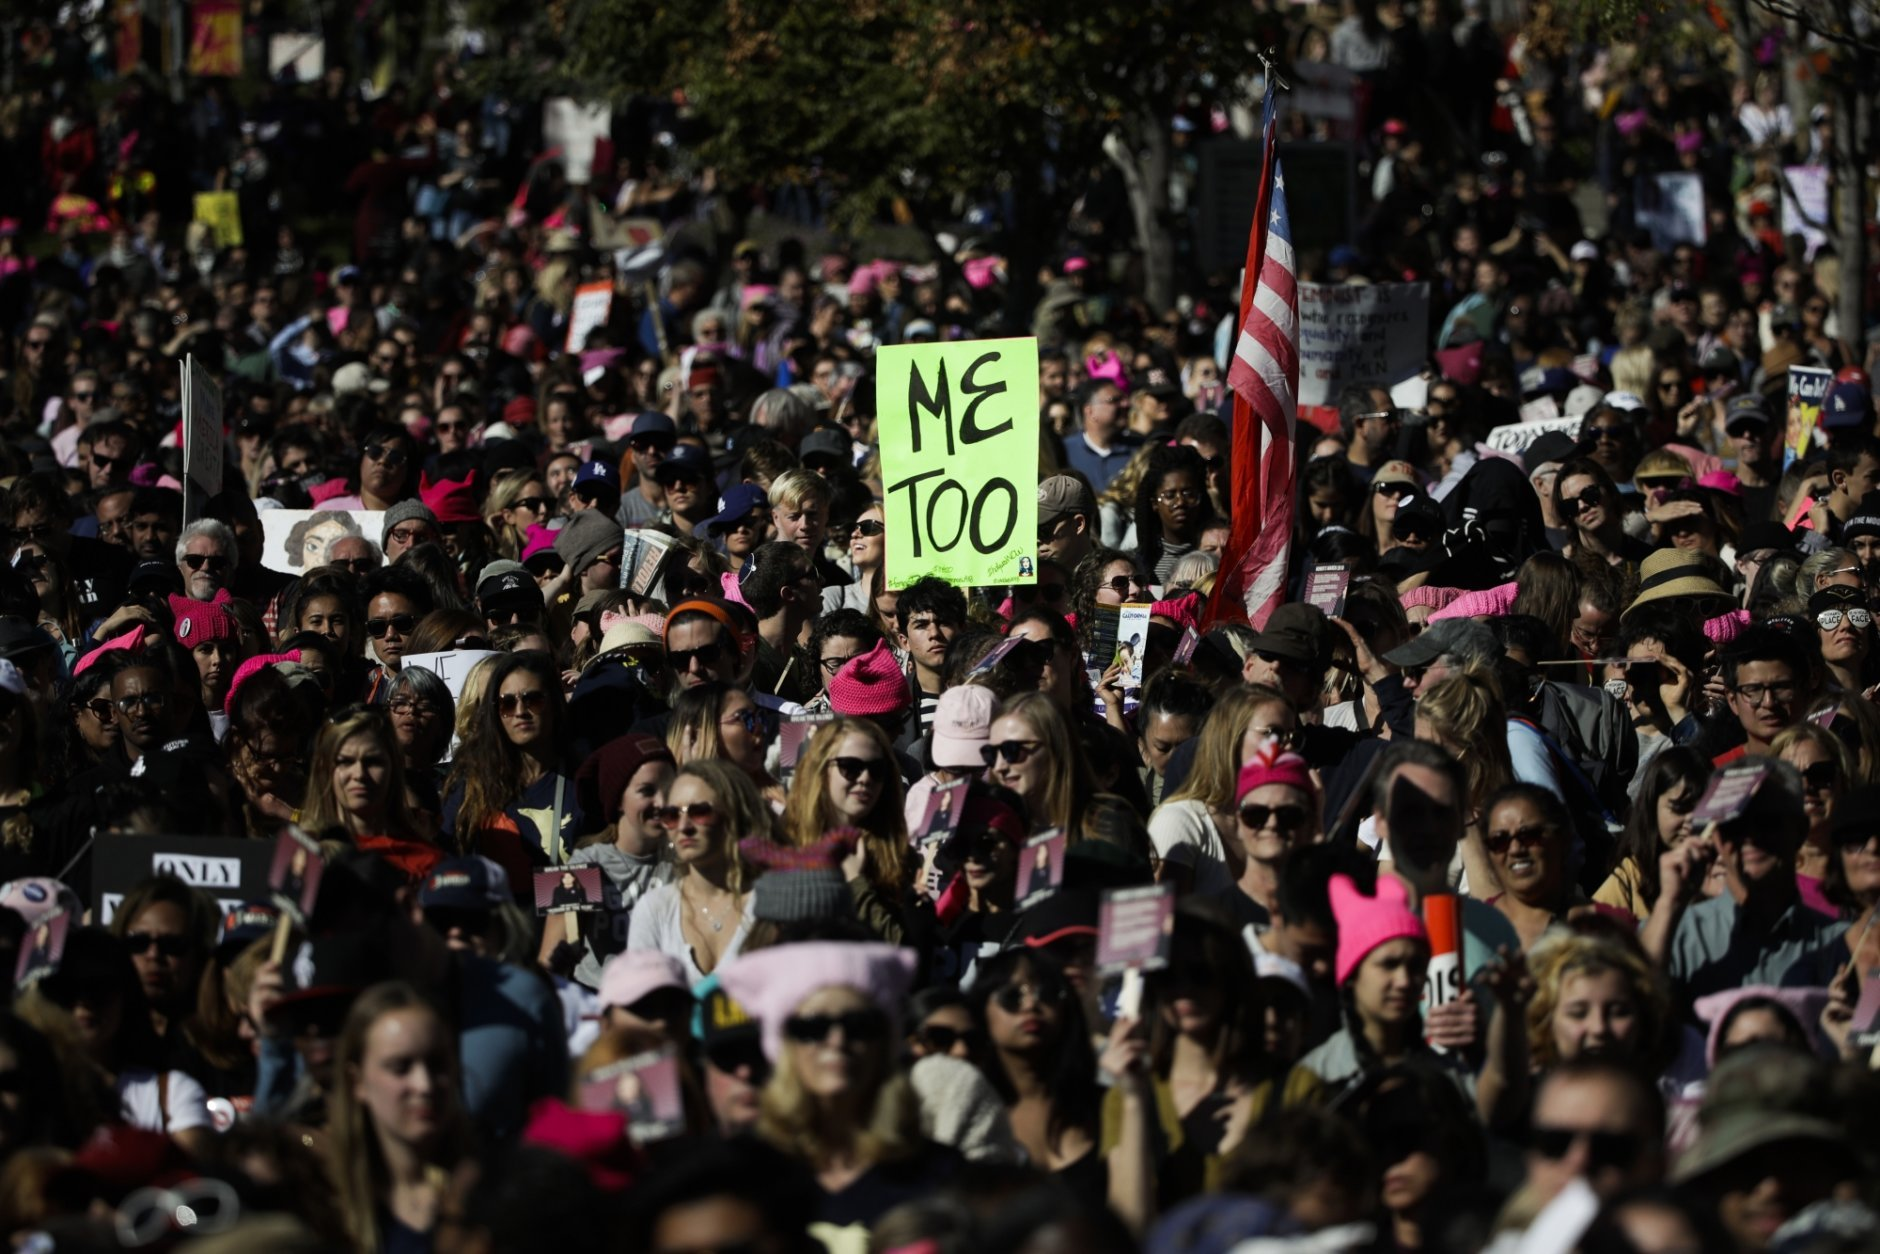 FILE - In this Saturday, Jan. 20, 2018 file photo, protesters gather at the Grand Park in Los Angeles for a Women's March against sexual violence and the policies of the Trump administration. The #MeToo movement, which surfaced late in 2017, maintained its momentum throughout 2018 as many more powerful men were forced to account for past instances of sexual assault and misconduct. (AP Photo/Jae C. Hong)